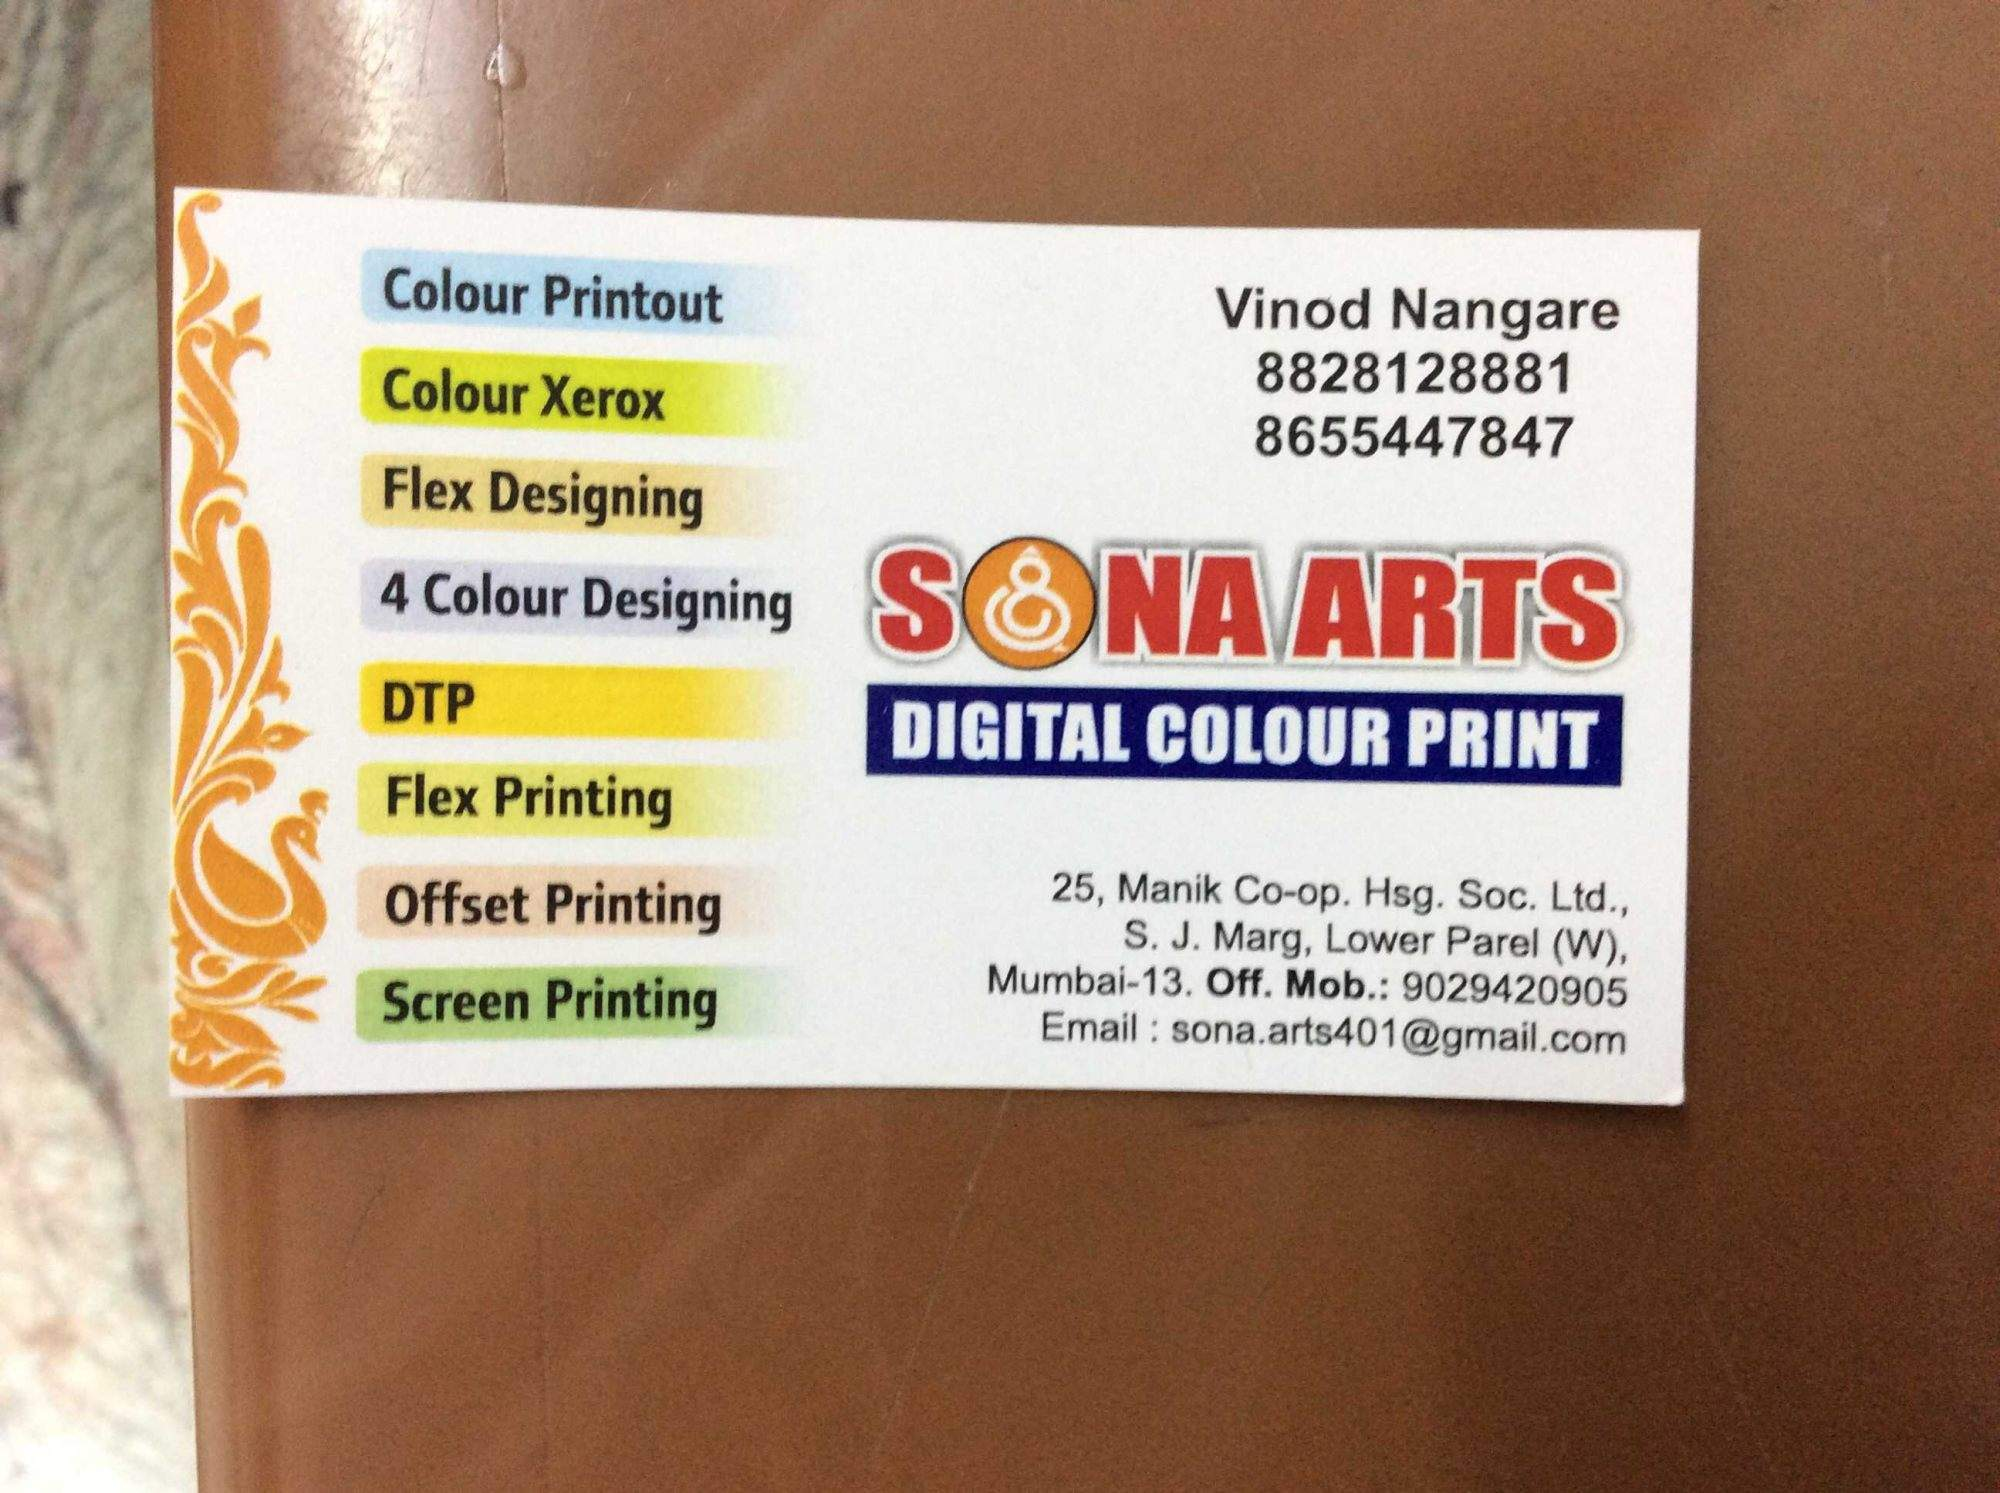 sona arts digital colour print lower parel flex printing services in mumbai justdial - Colour Print Out